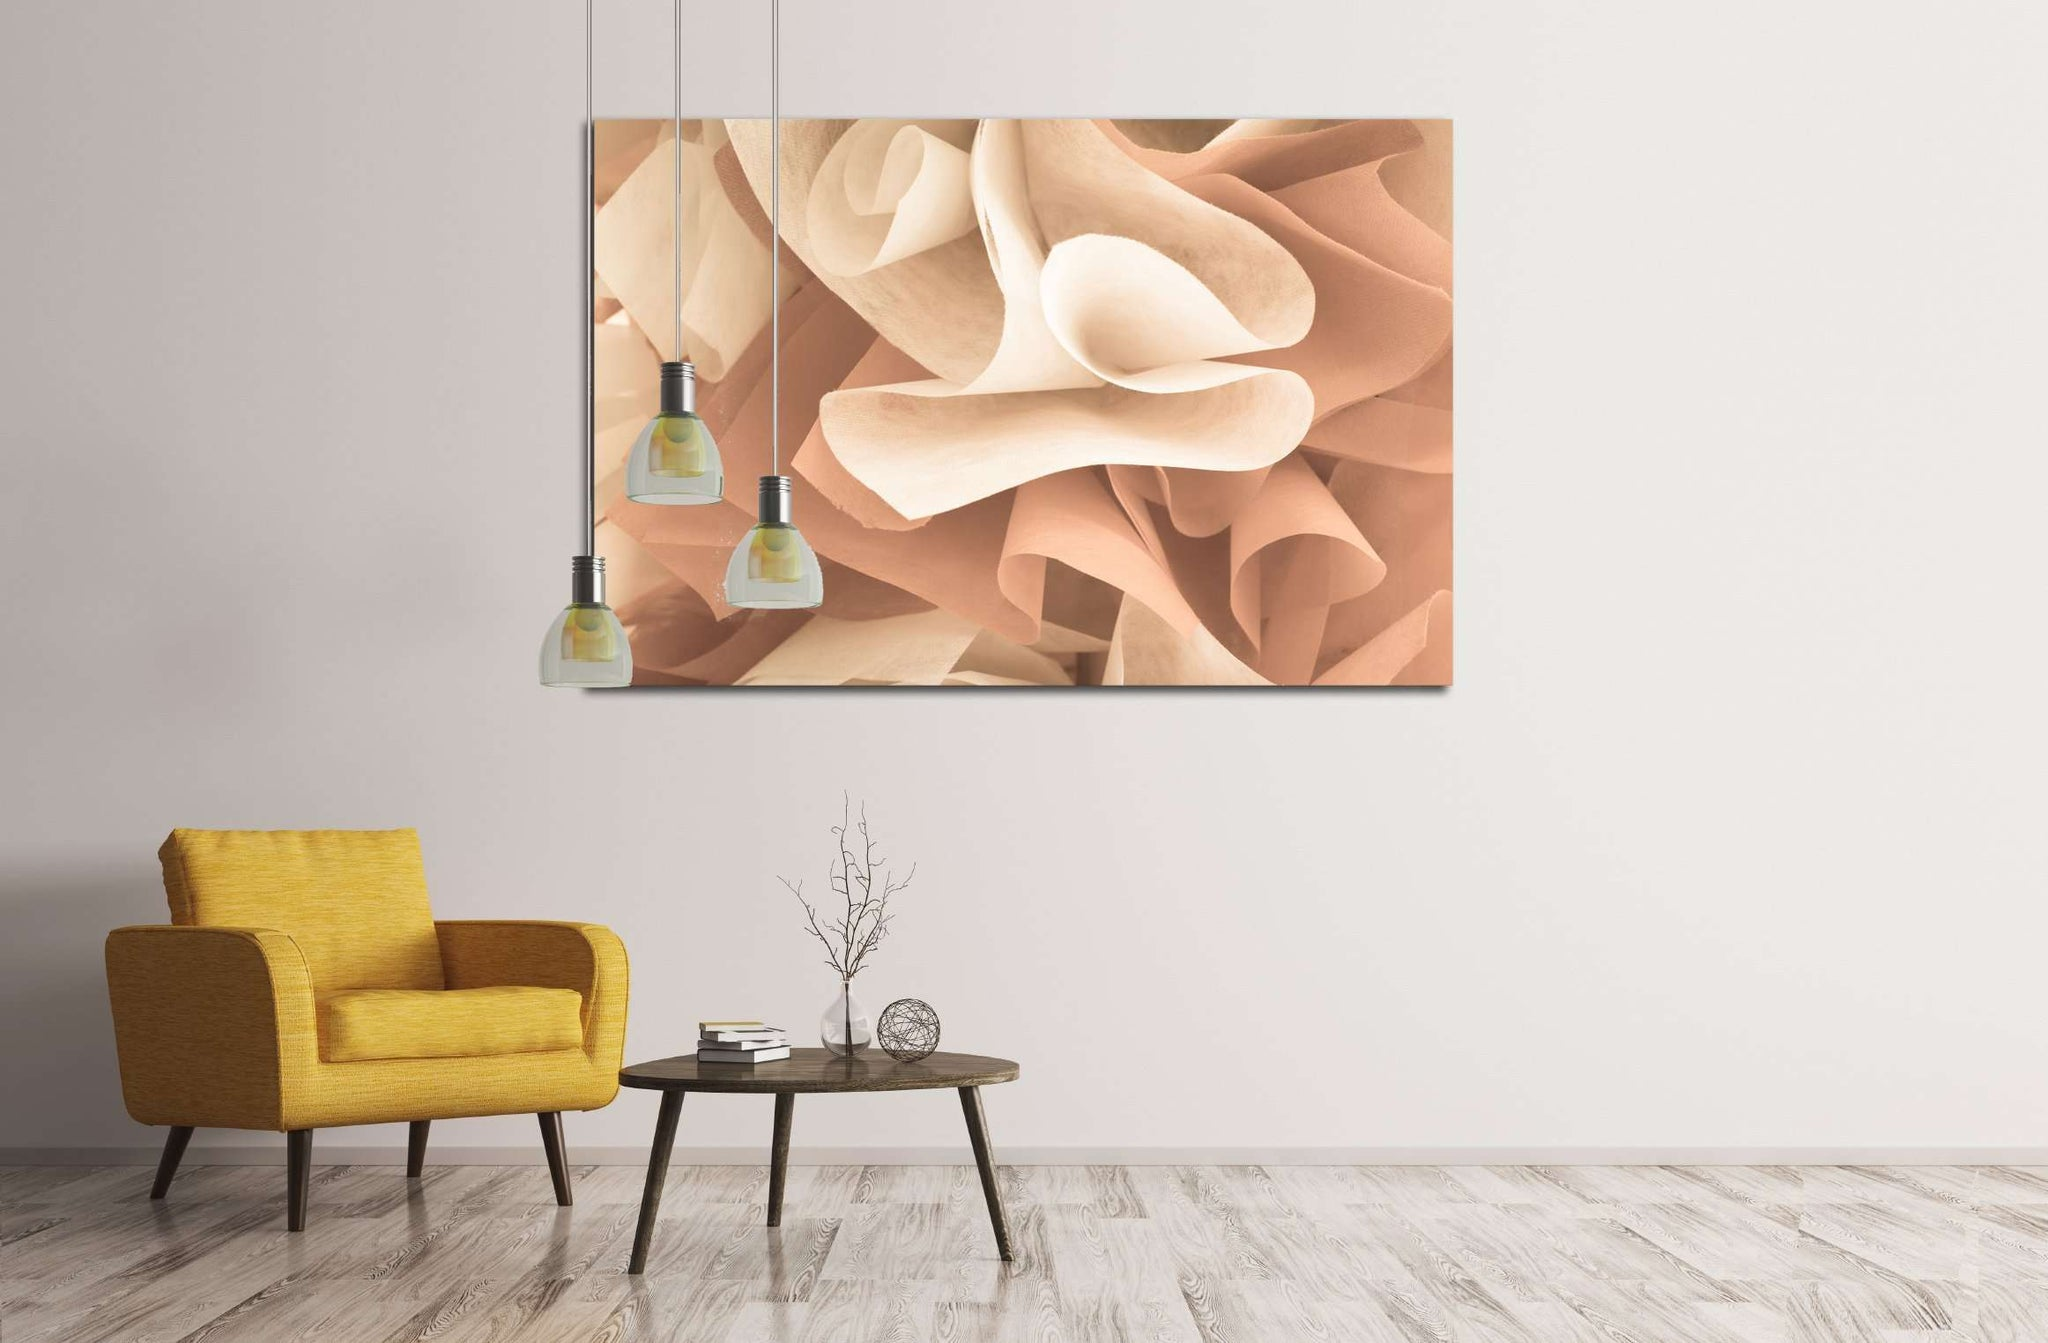 abstract beautiful rose gold color №2893 Ready to Hang Canvas Print